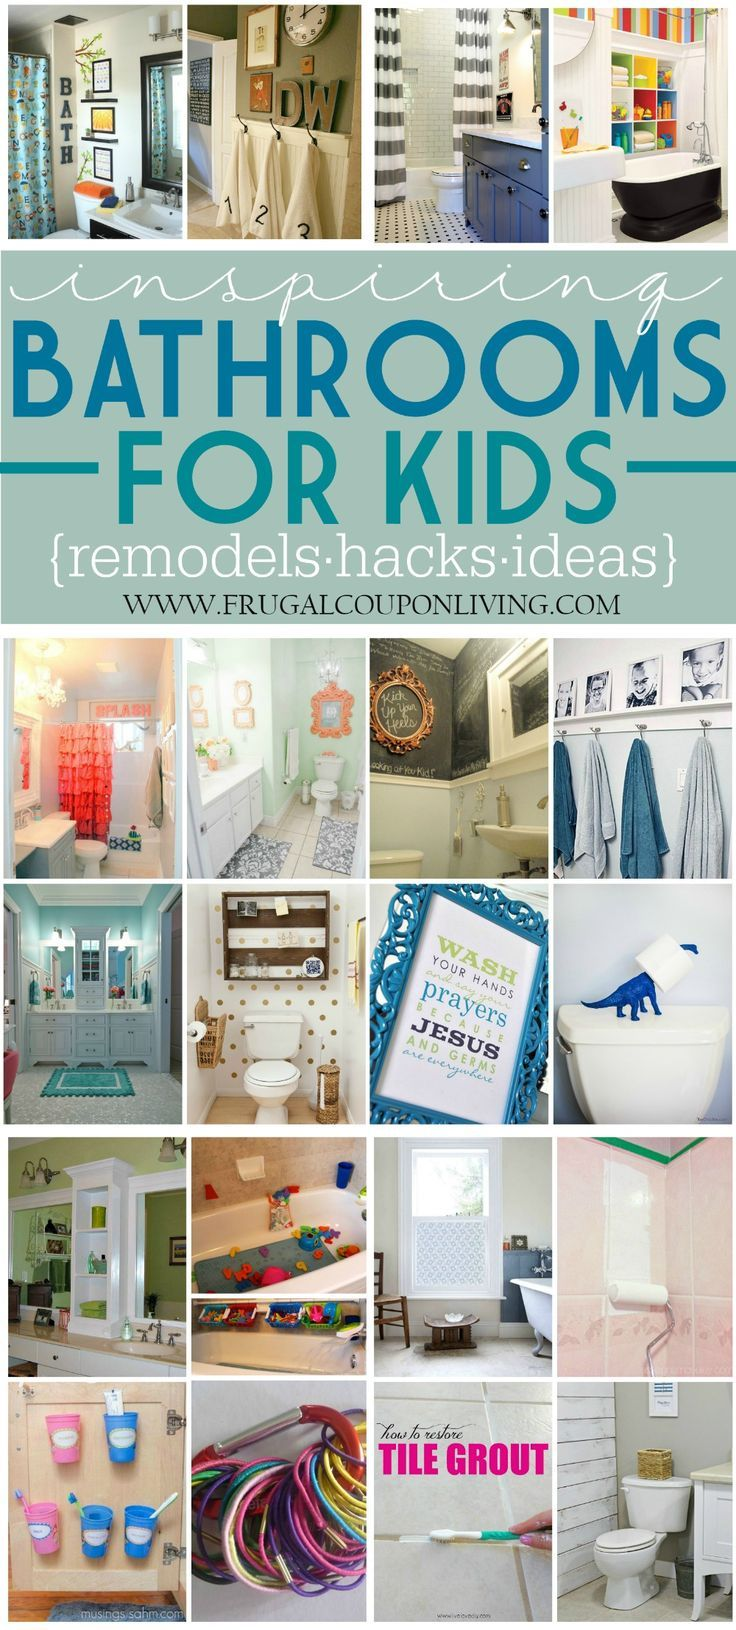 Inspiring Kids Bathrooms Remodels And Hacks Bathroom Kids Kid Bathroom Decor Girl Bathrooms